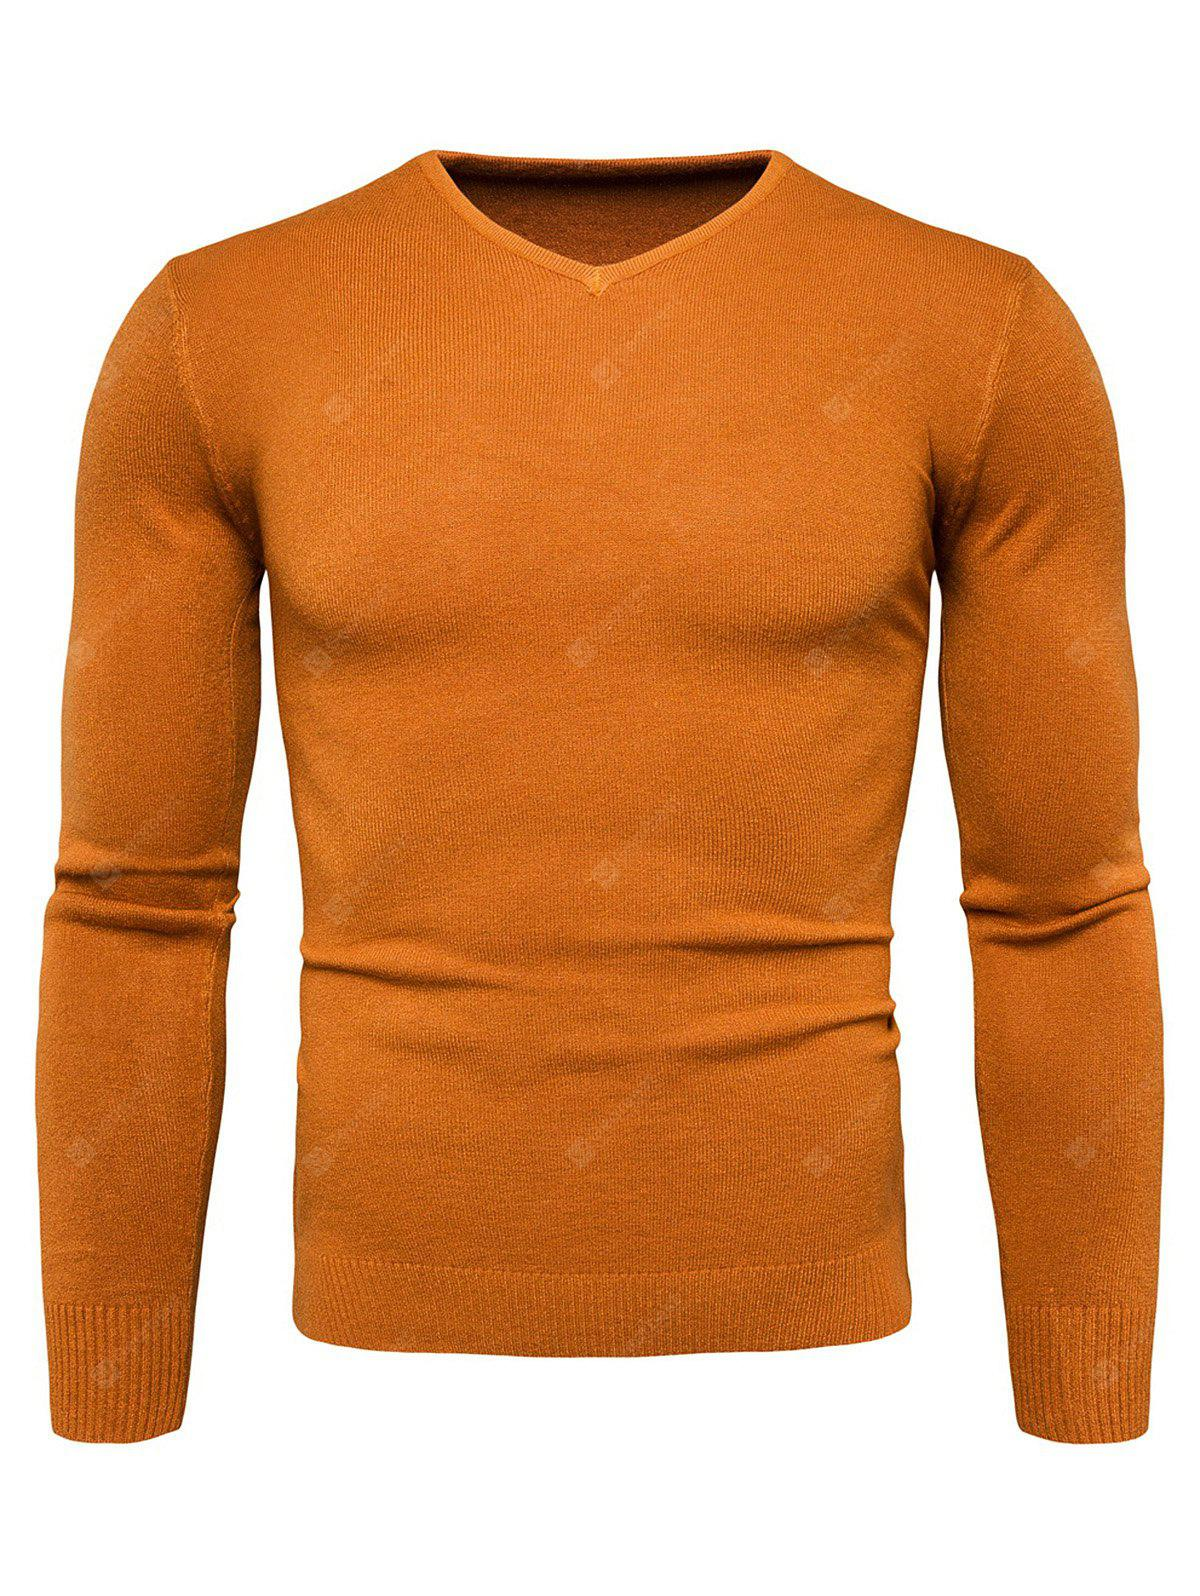 YELLOW 2XL Pure Color Long Sleeves Comfortable Sweater for Men